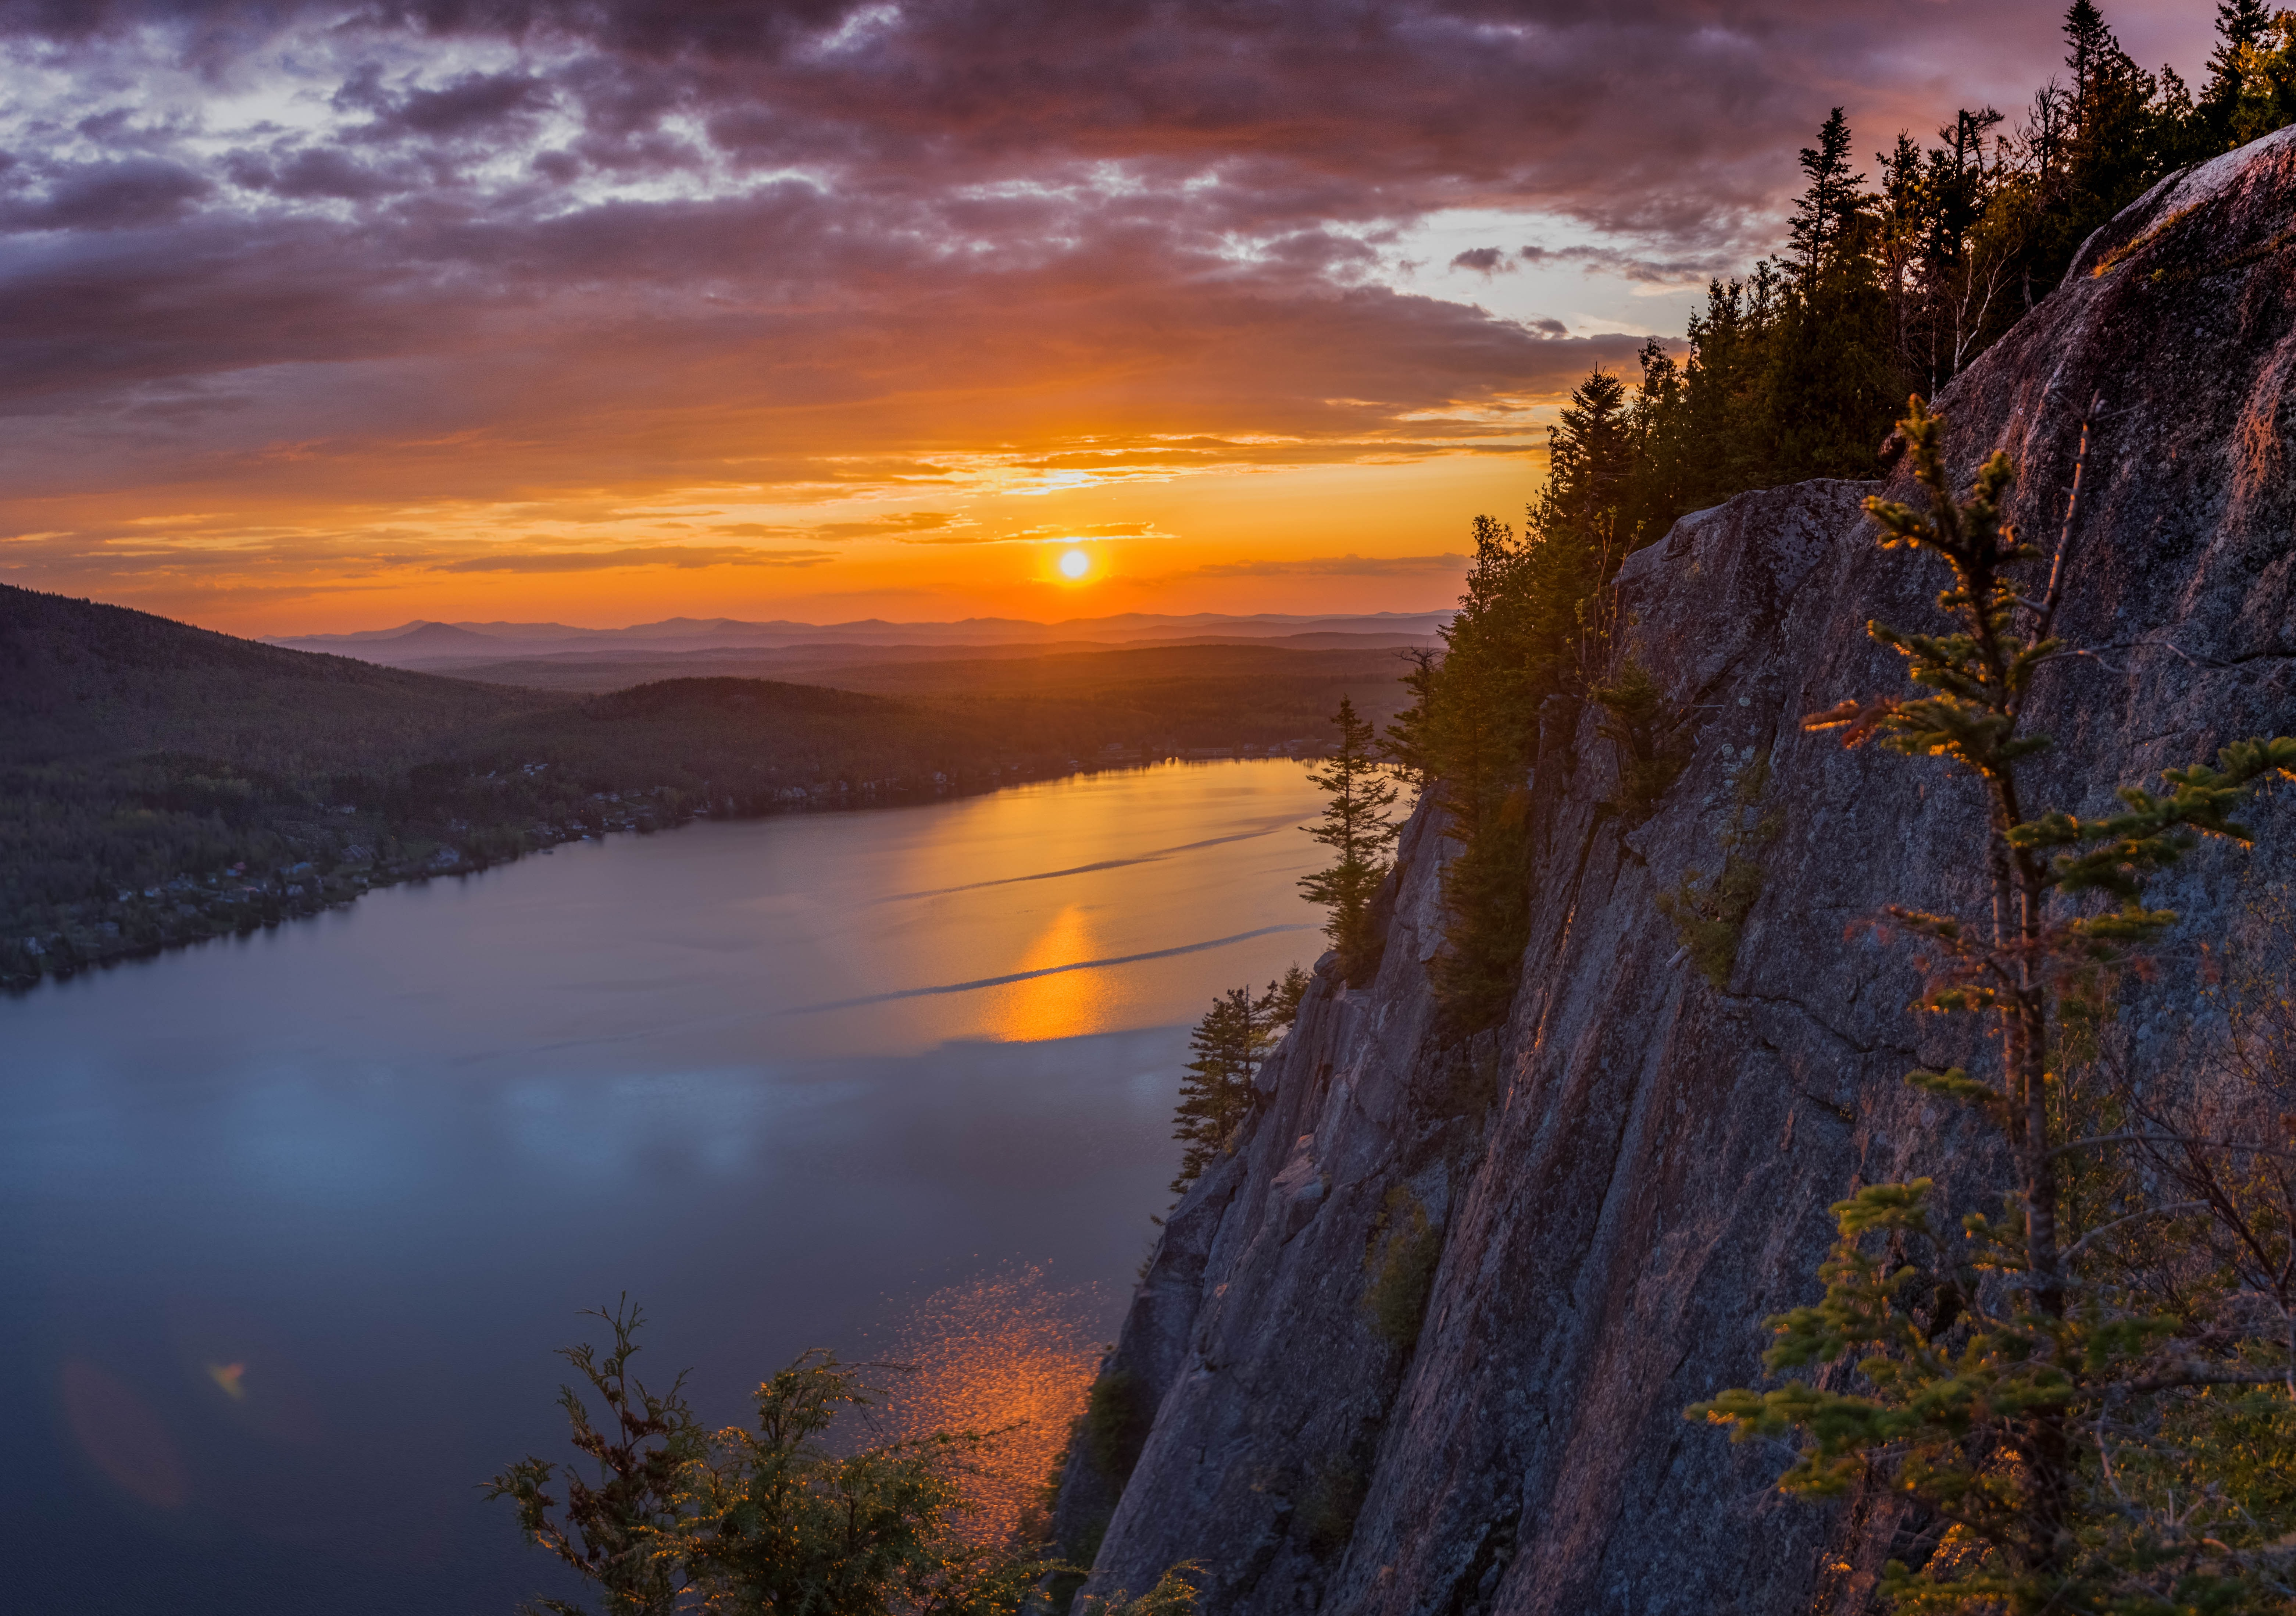 gray cliff near body of water during golden hour